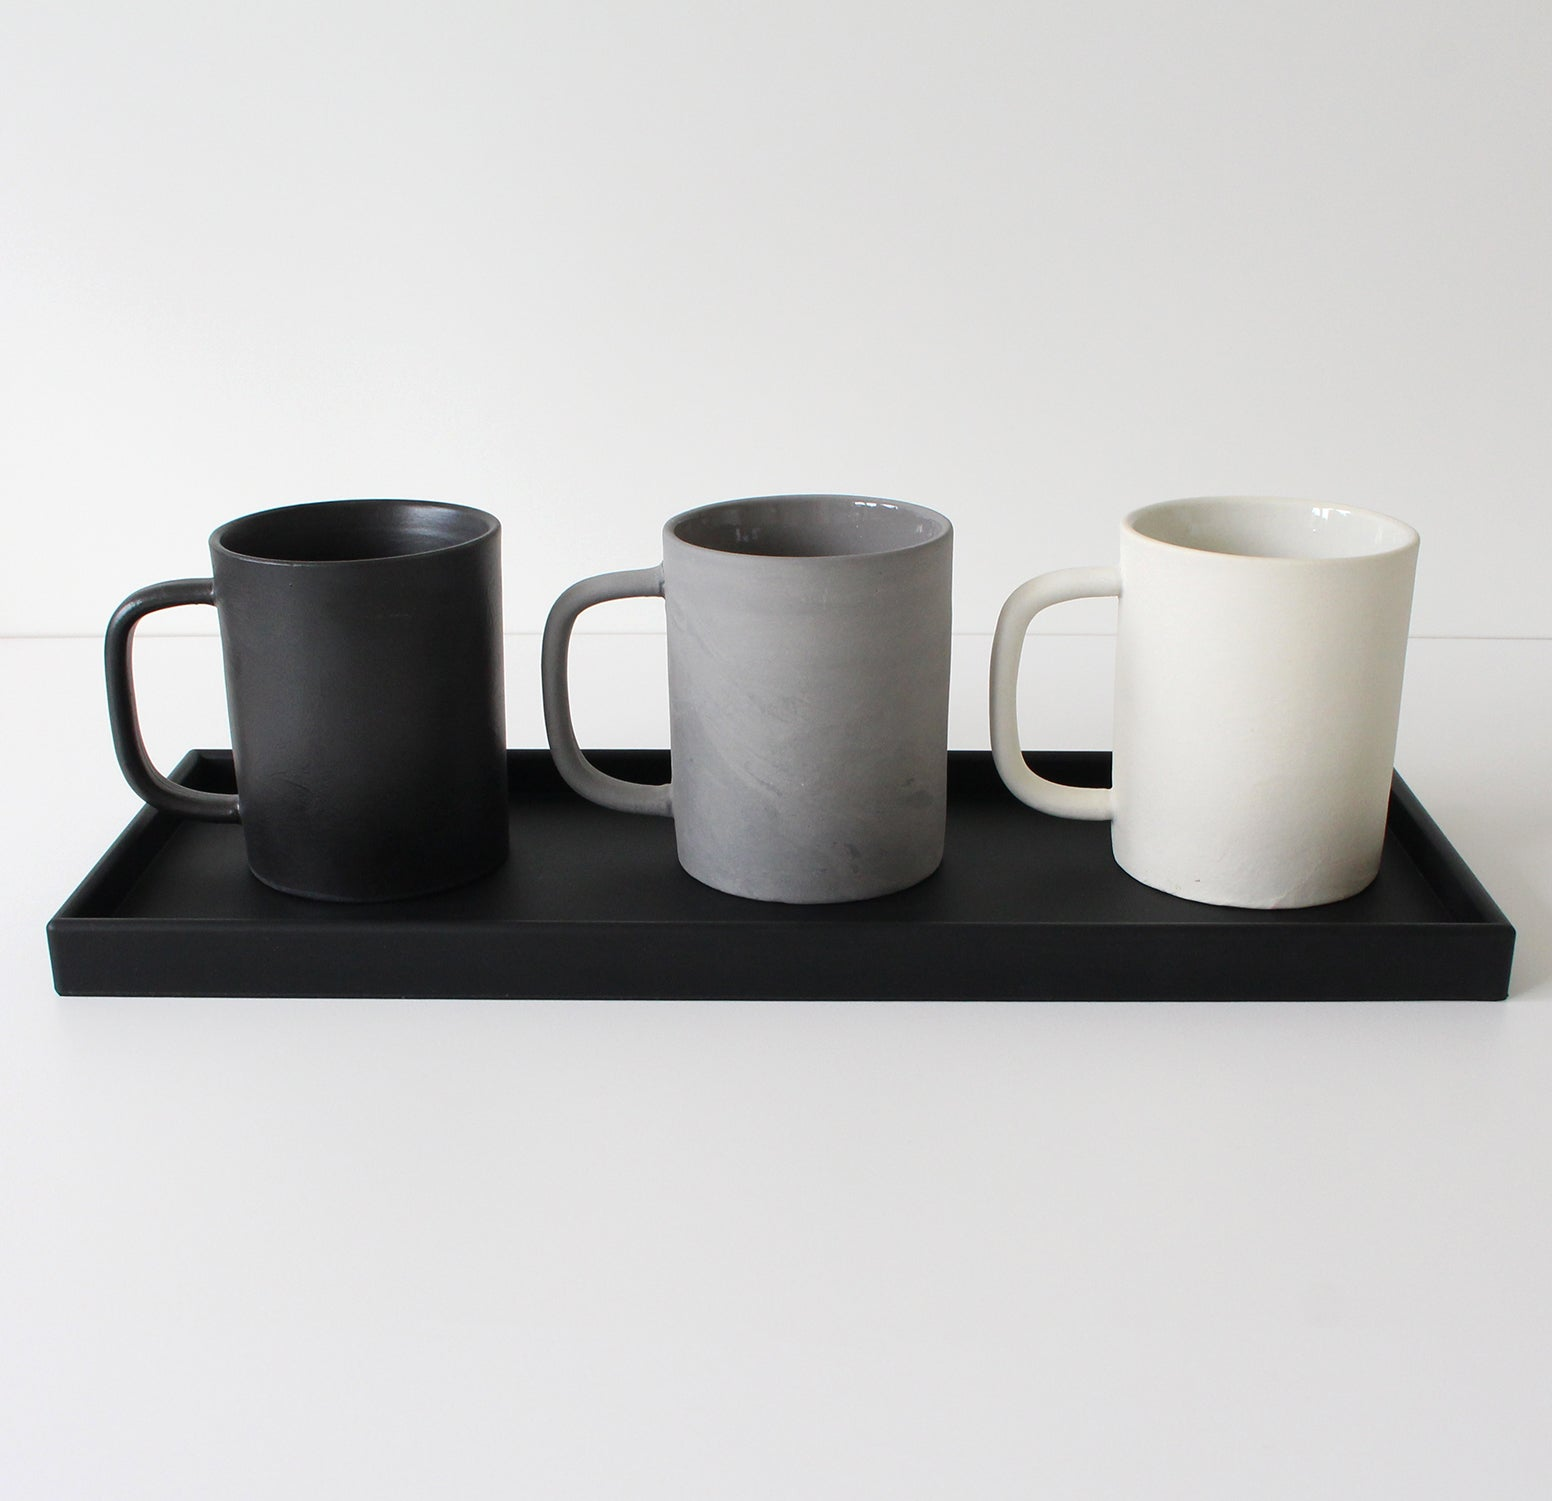 Black rubber tray with 3 ceramic mugs, one black, one grey, one white